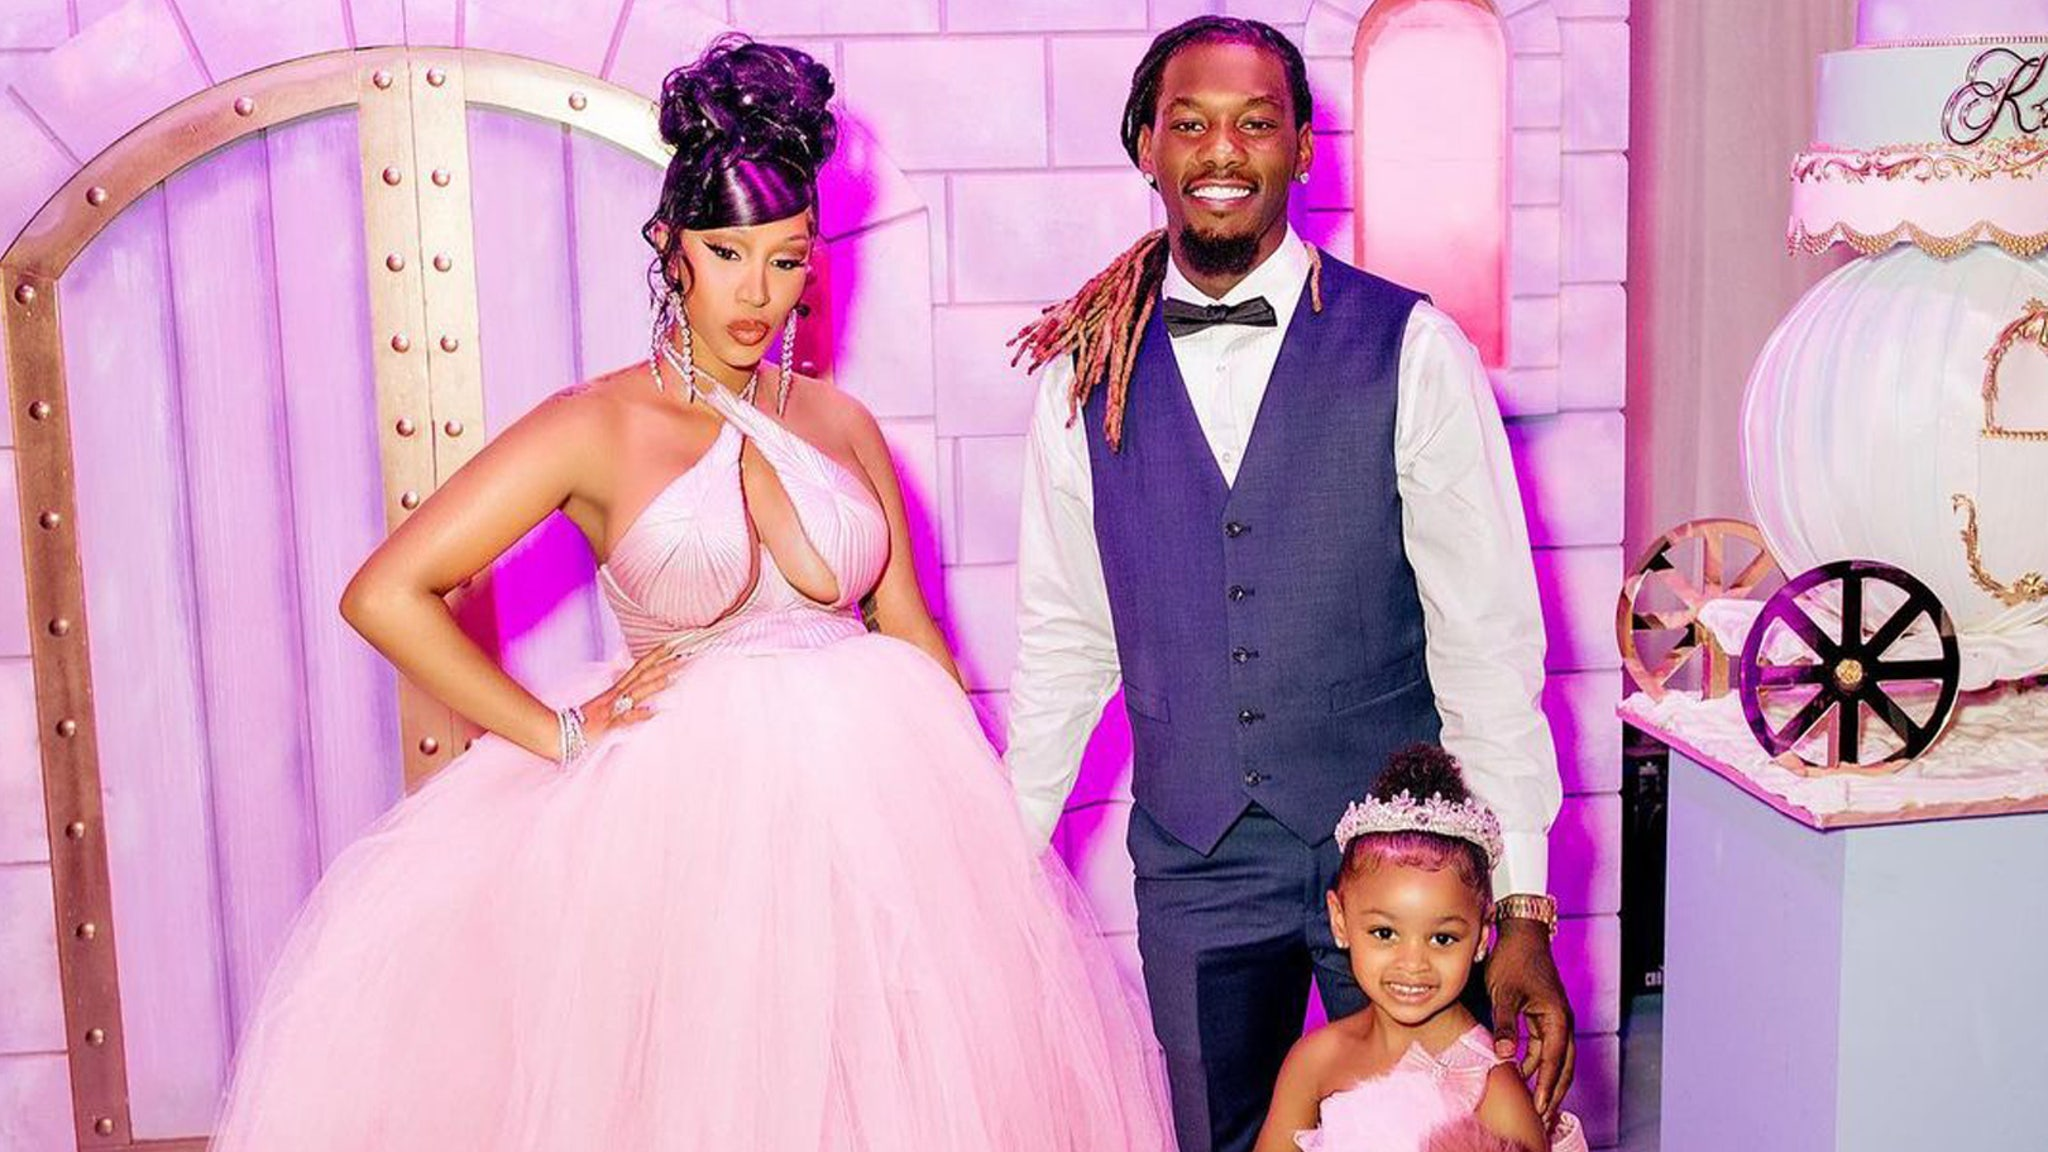 Cardi B Defends $ 150K Necklace From 3-Year-Old Kulture Amid Backlash